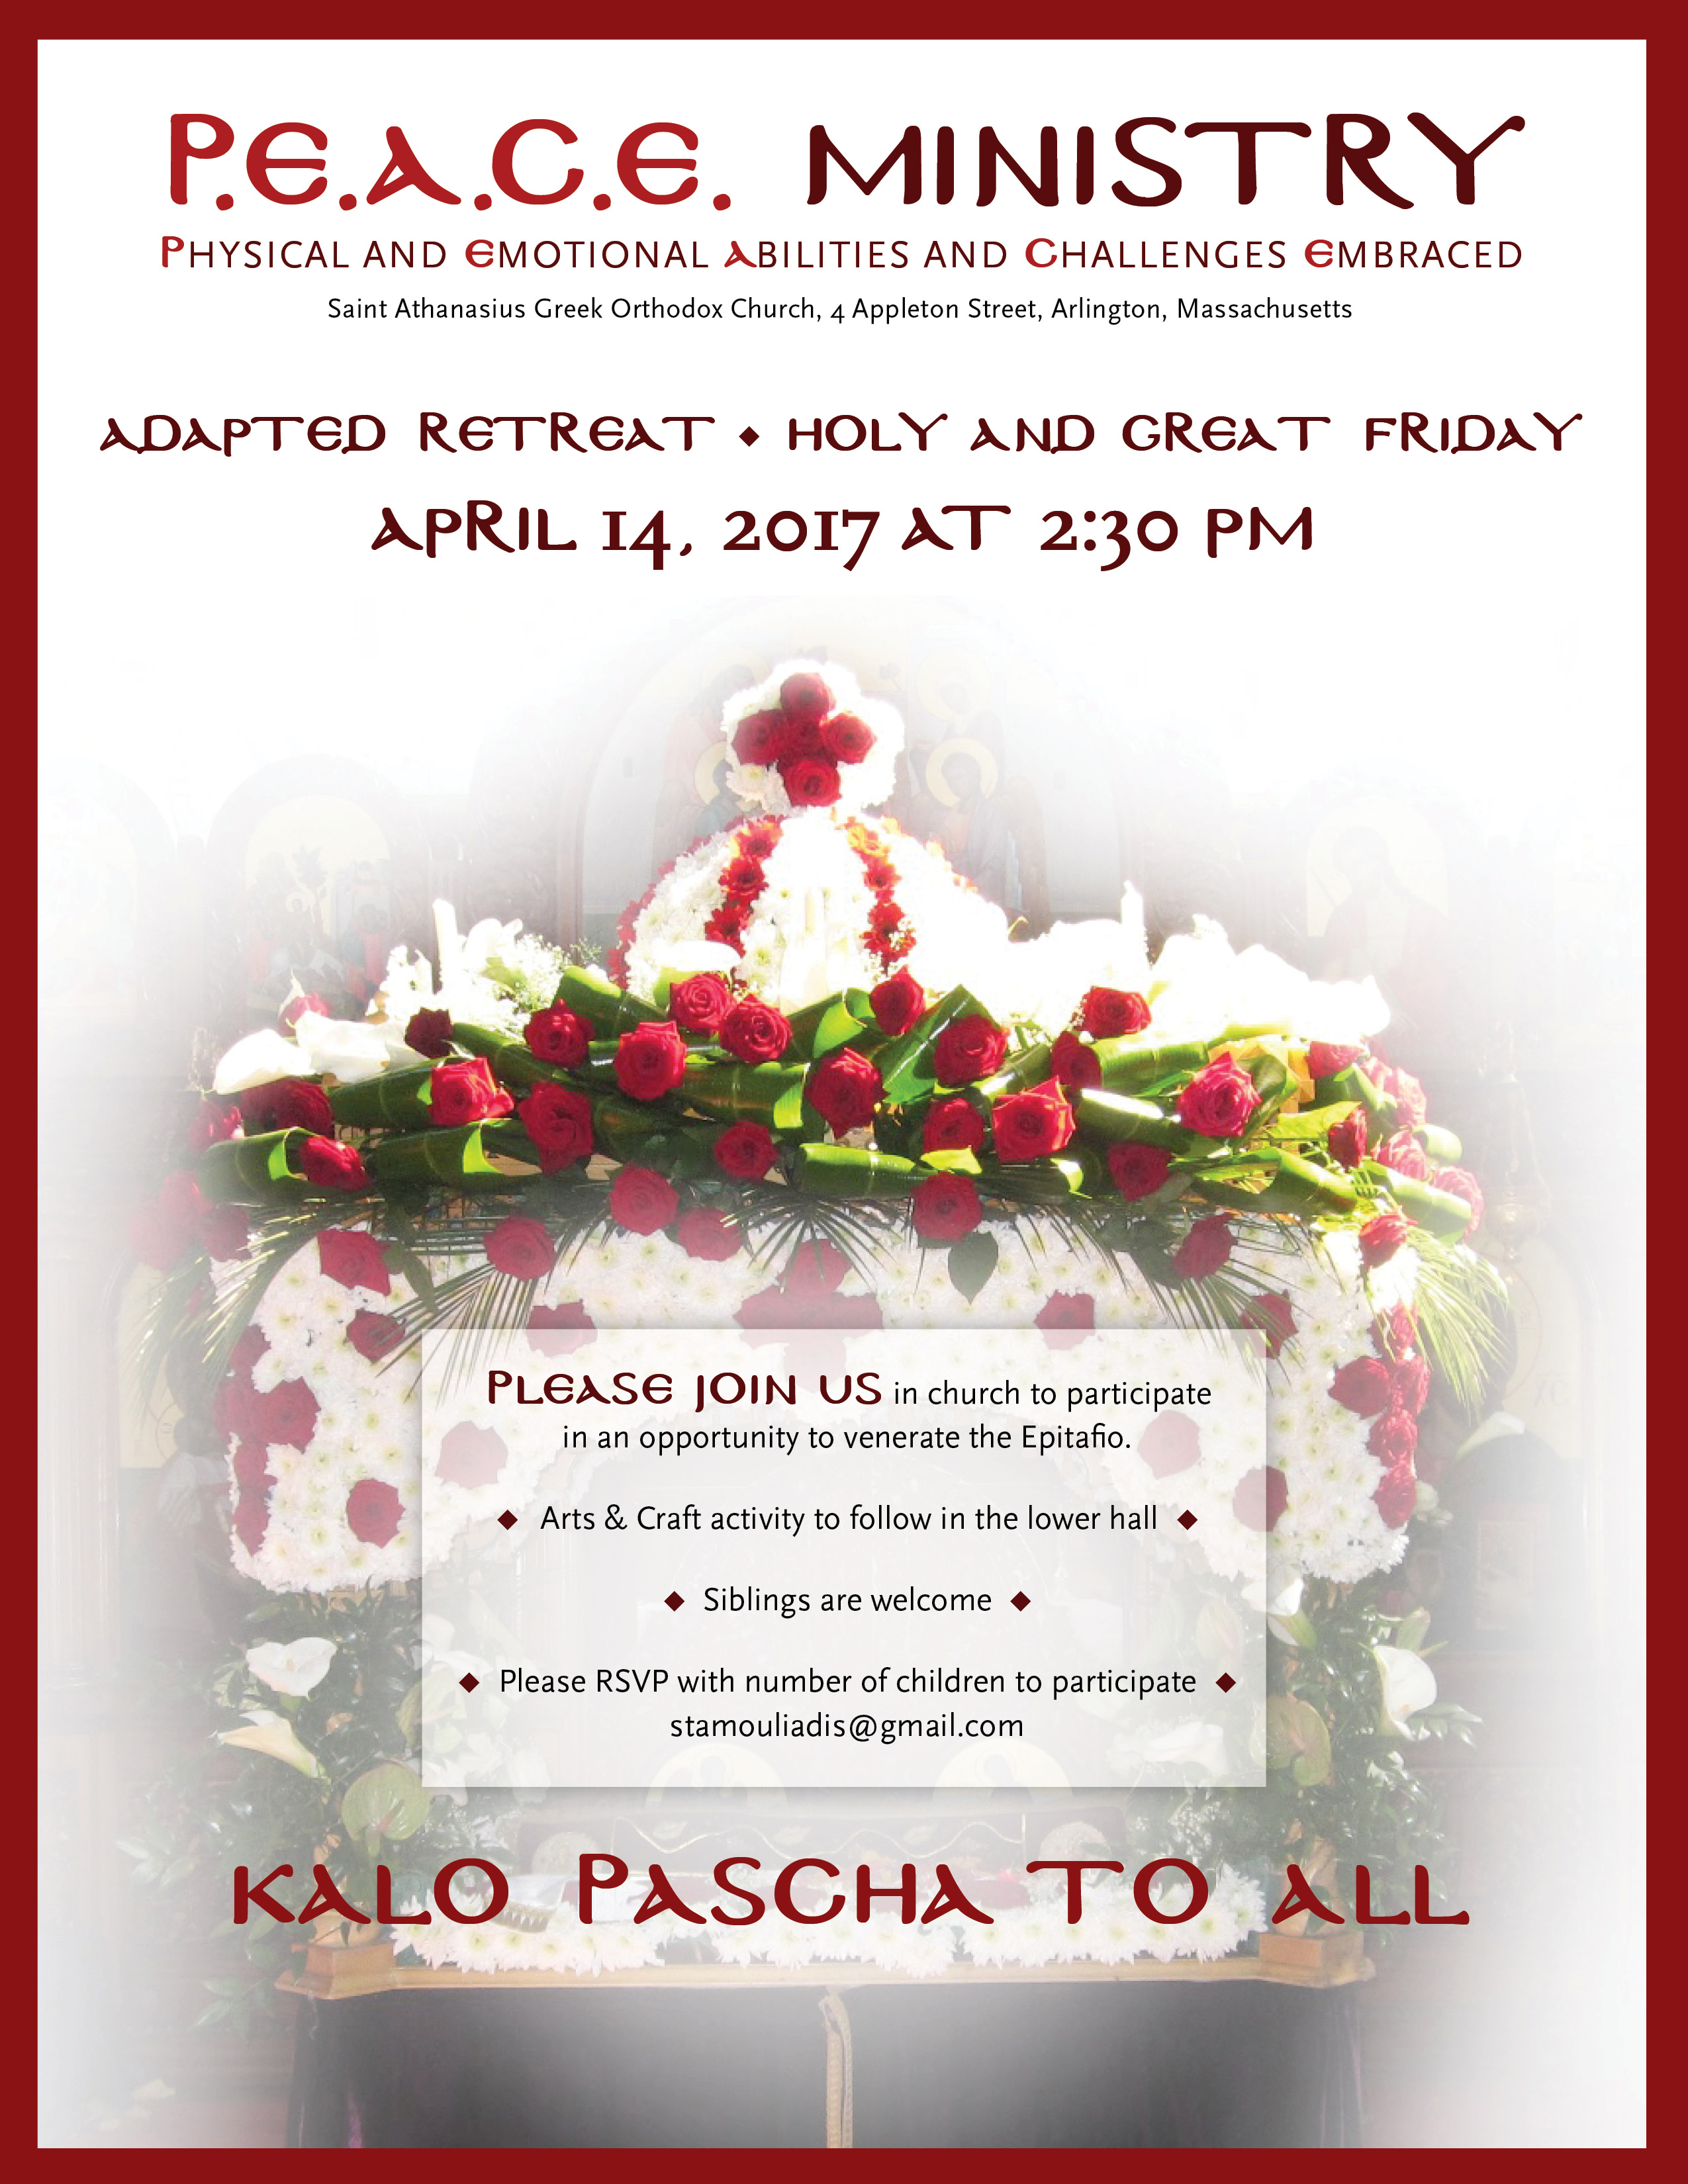 Peace ministry special needs service at st athanasius greek church join us for an opportunity to have your children that may have challenges pass under the epitafios prior to services after crossing under the epitafios we kristyandbryce Gallery